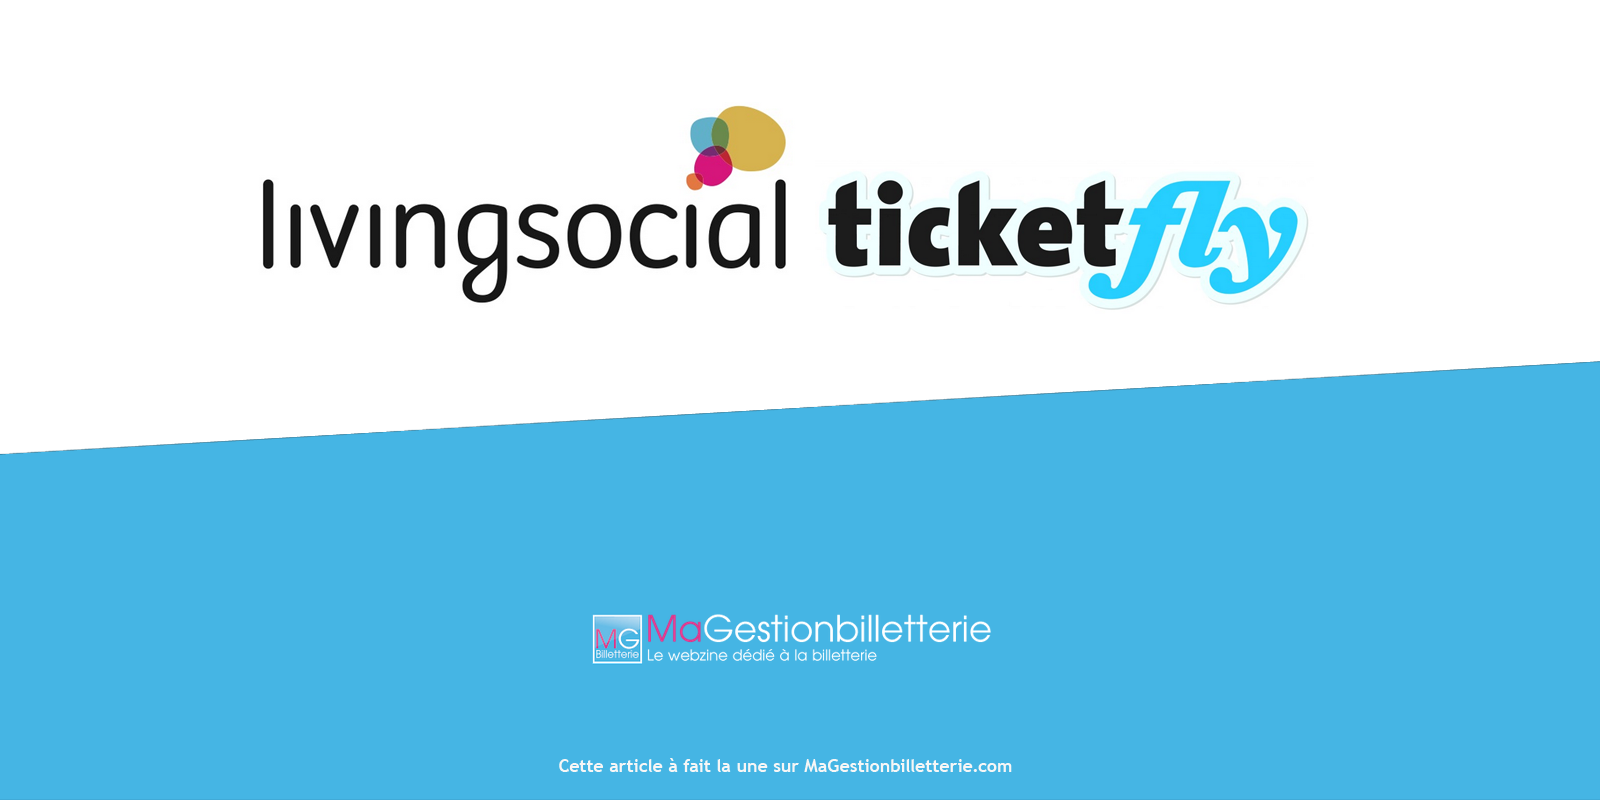 Livingsocial-ticketfly-une